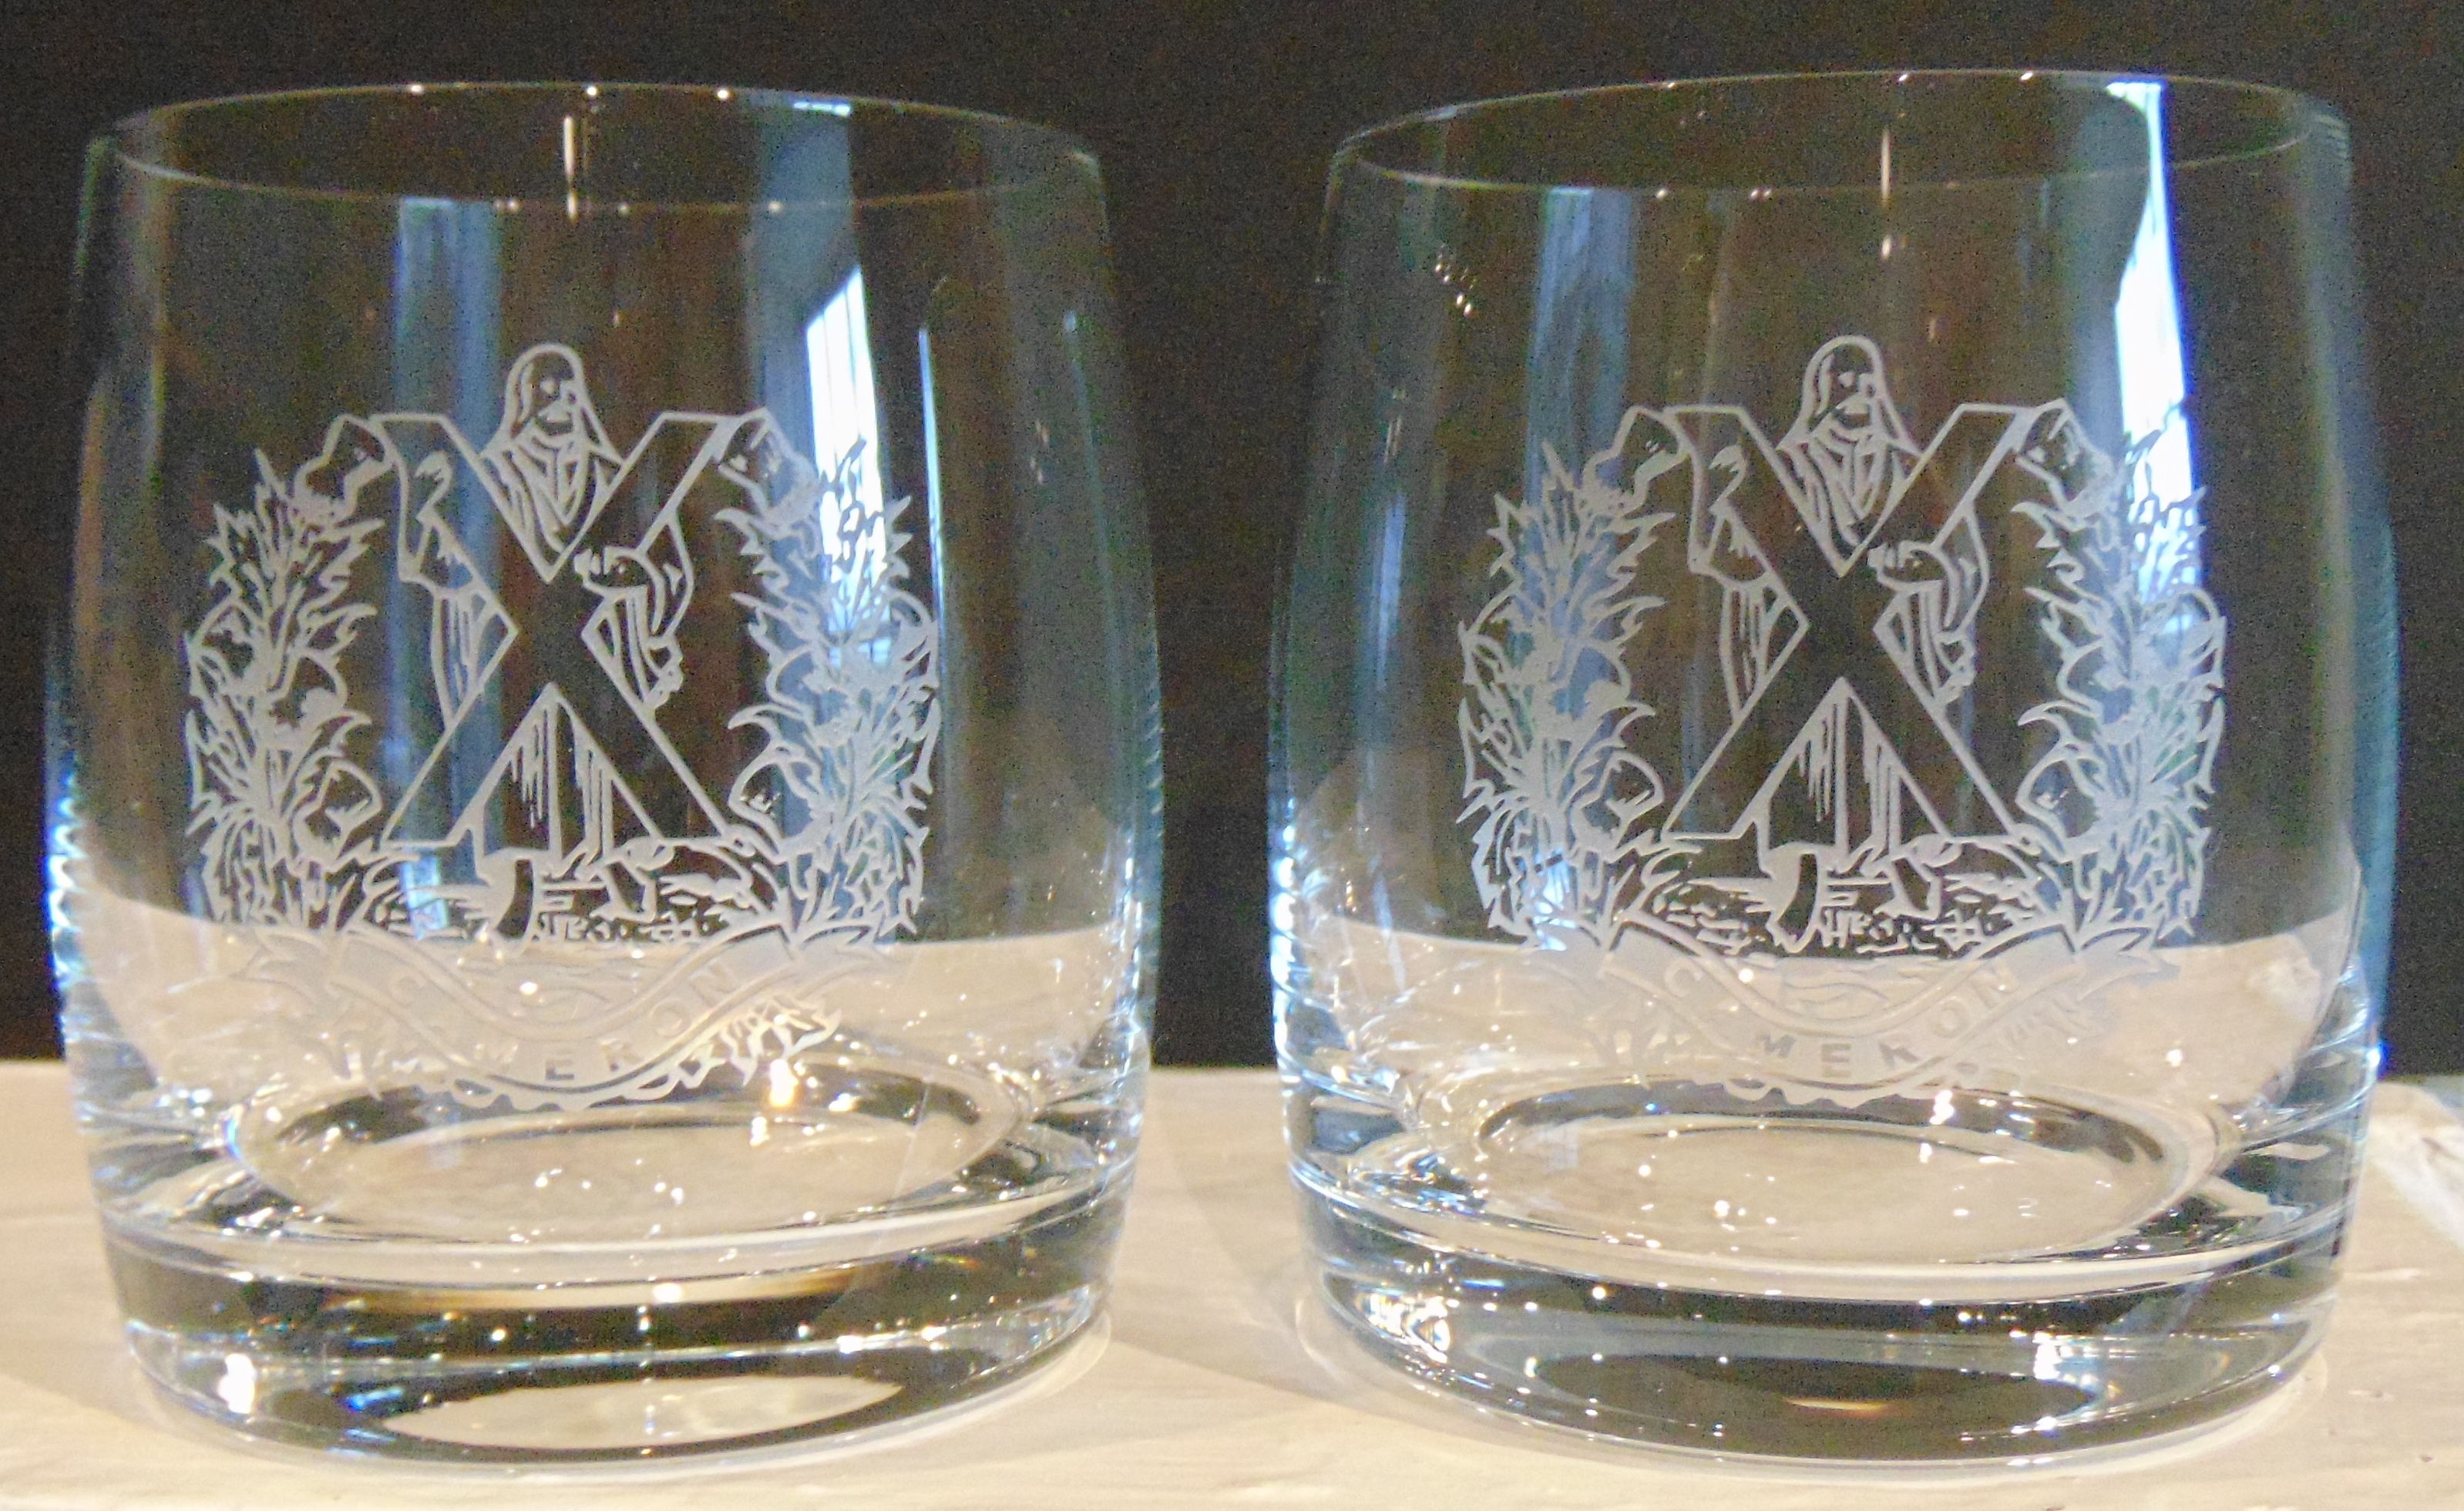 Whisky Glasses The Queens Own Cameron Highlanders set of two